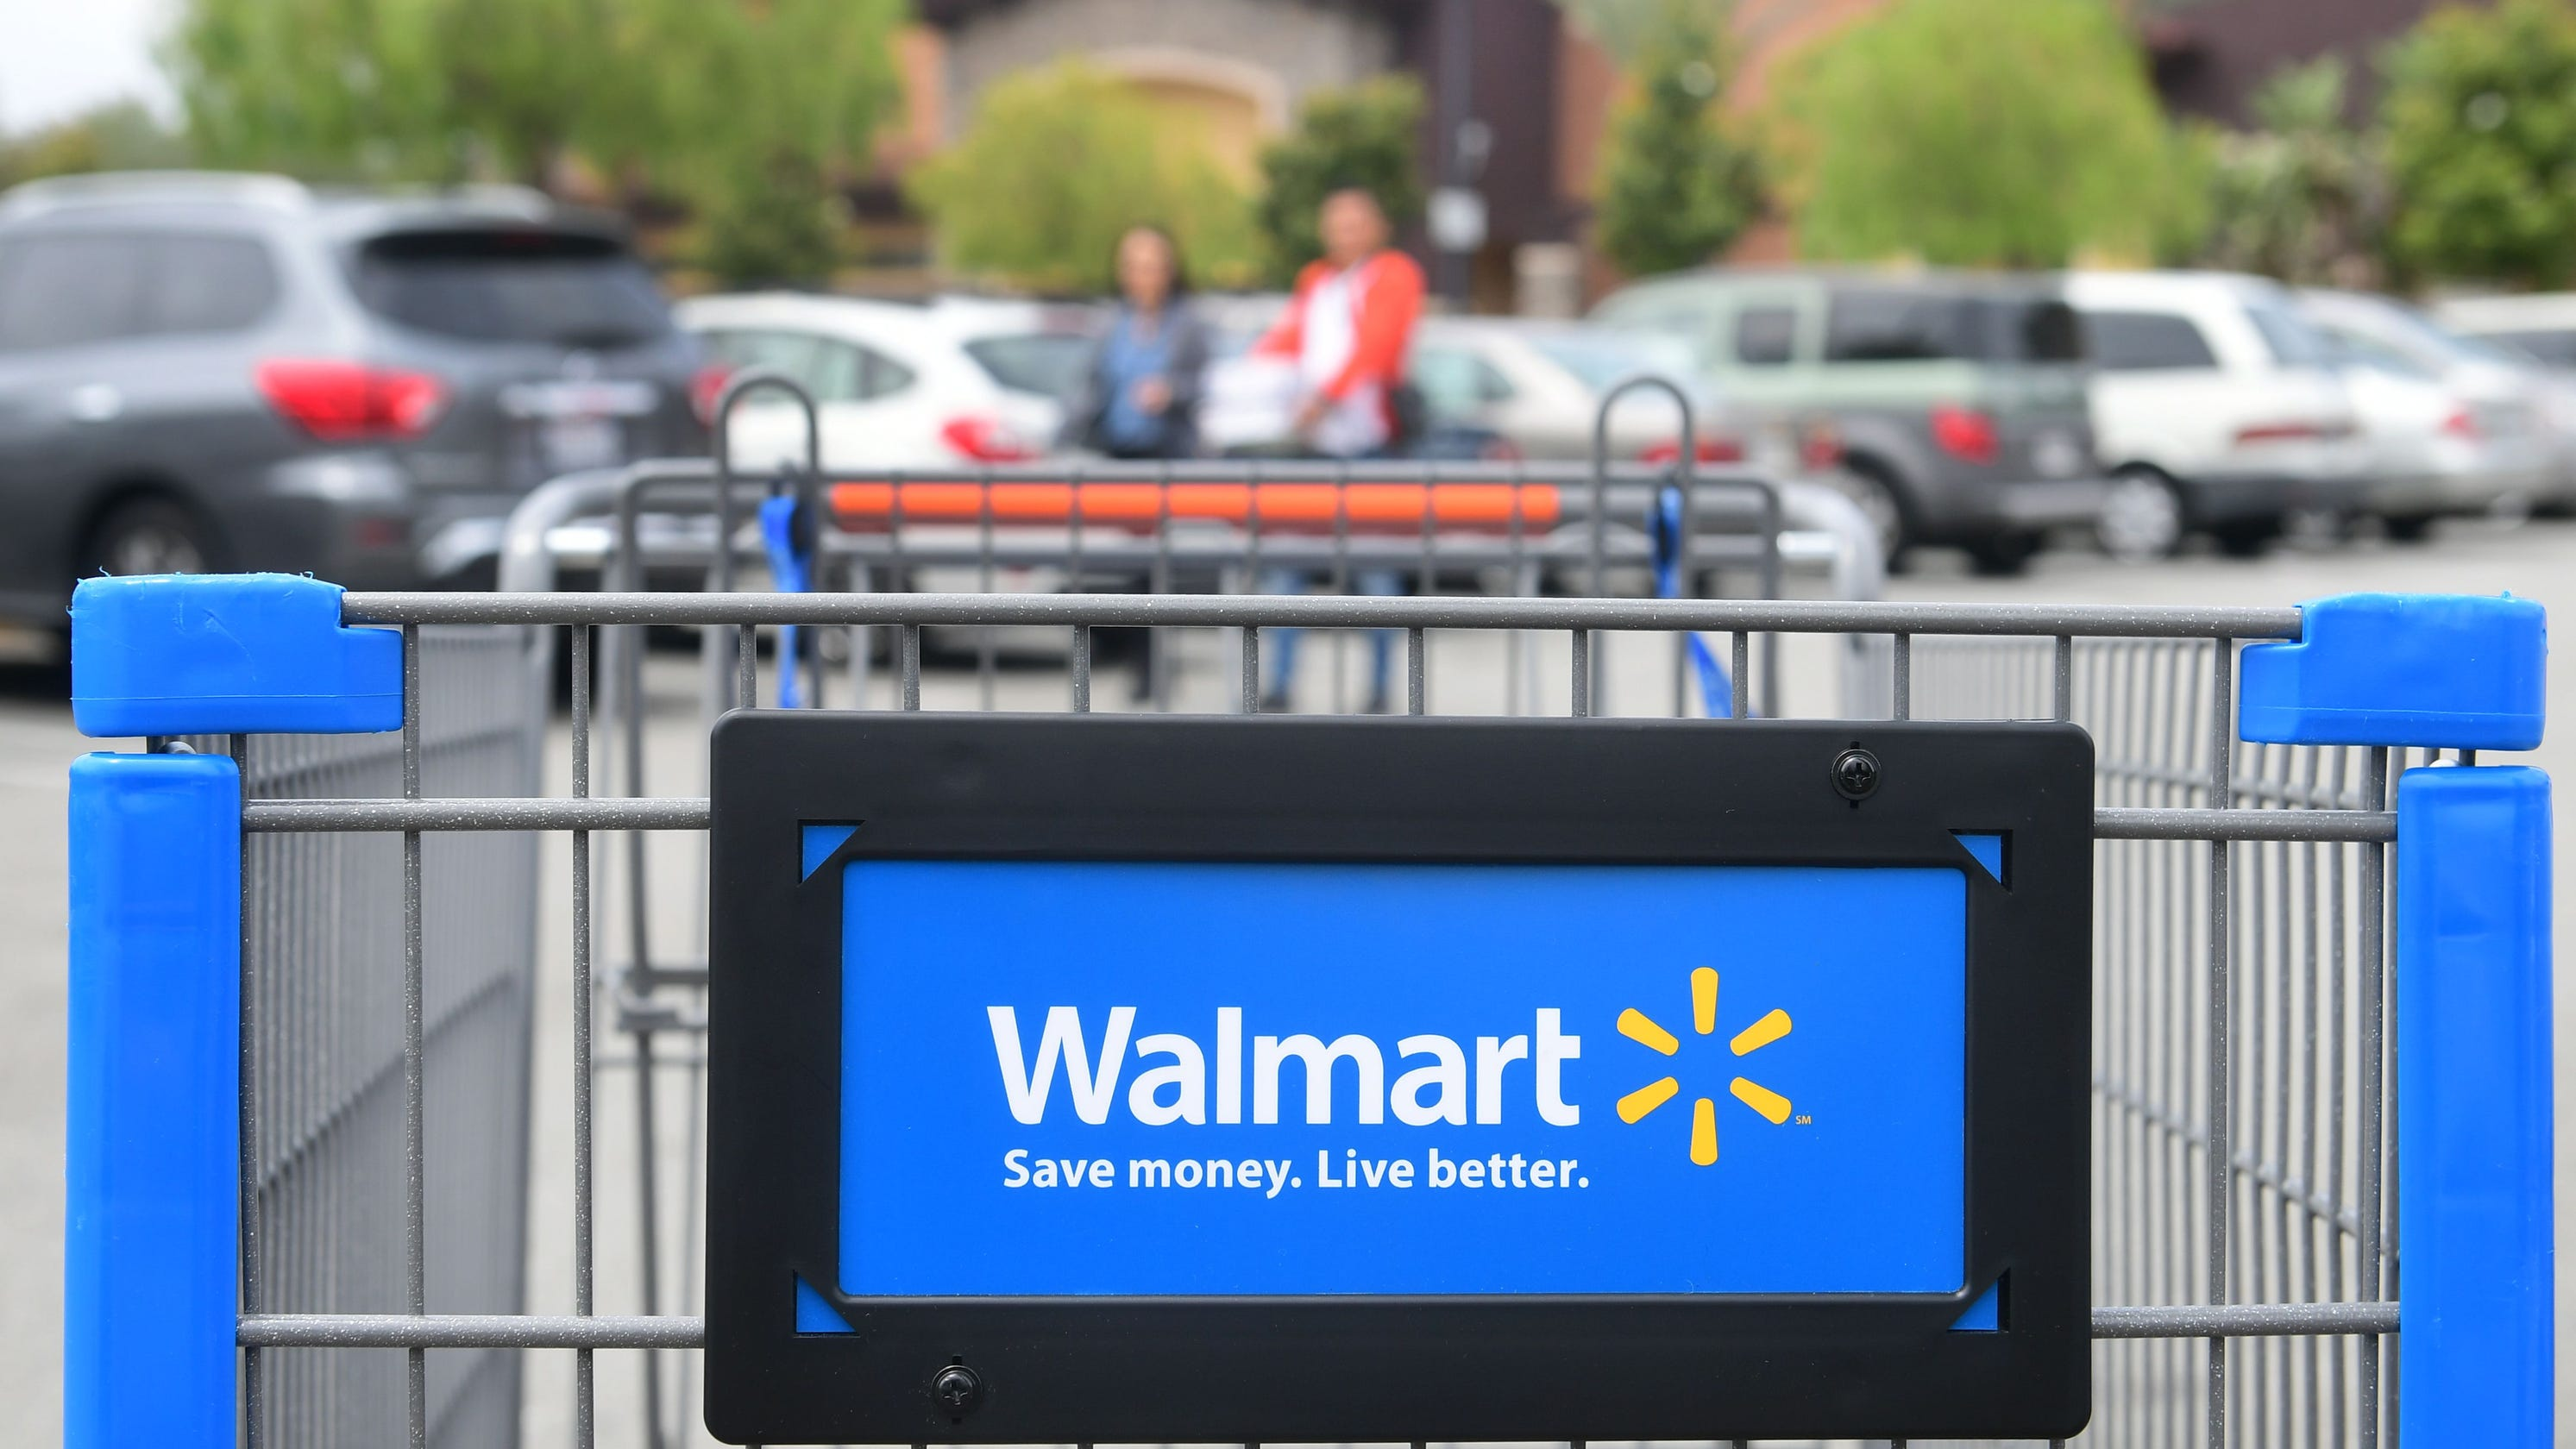 Walmart ending car seat recycling event early due to 'overwhelming response'